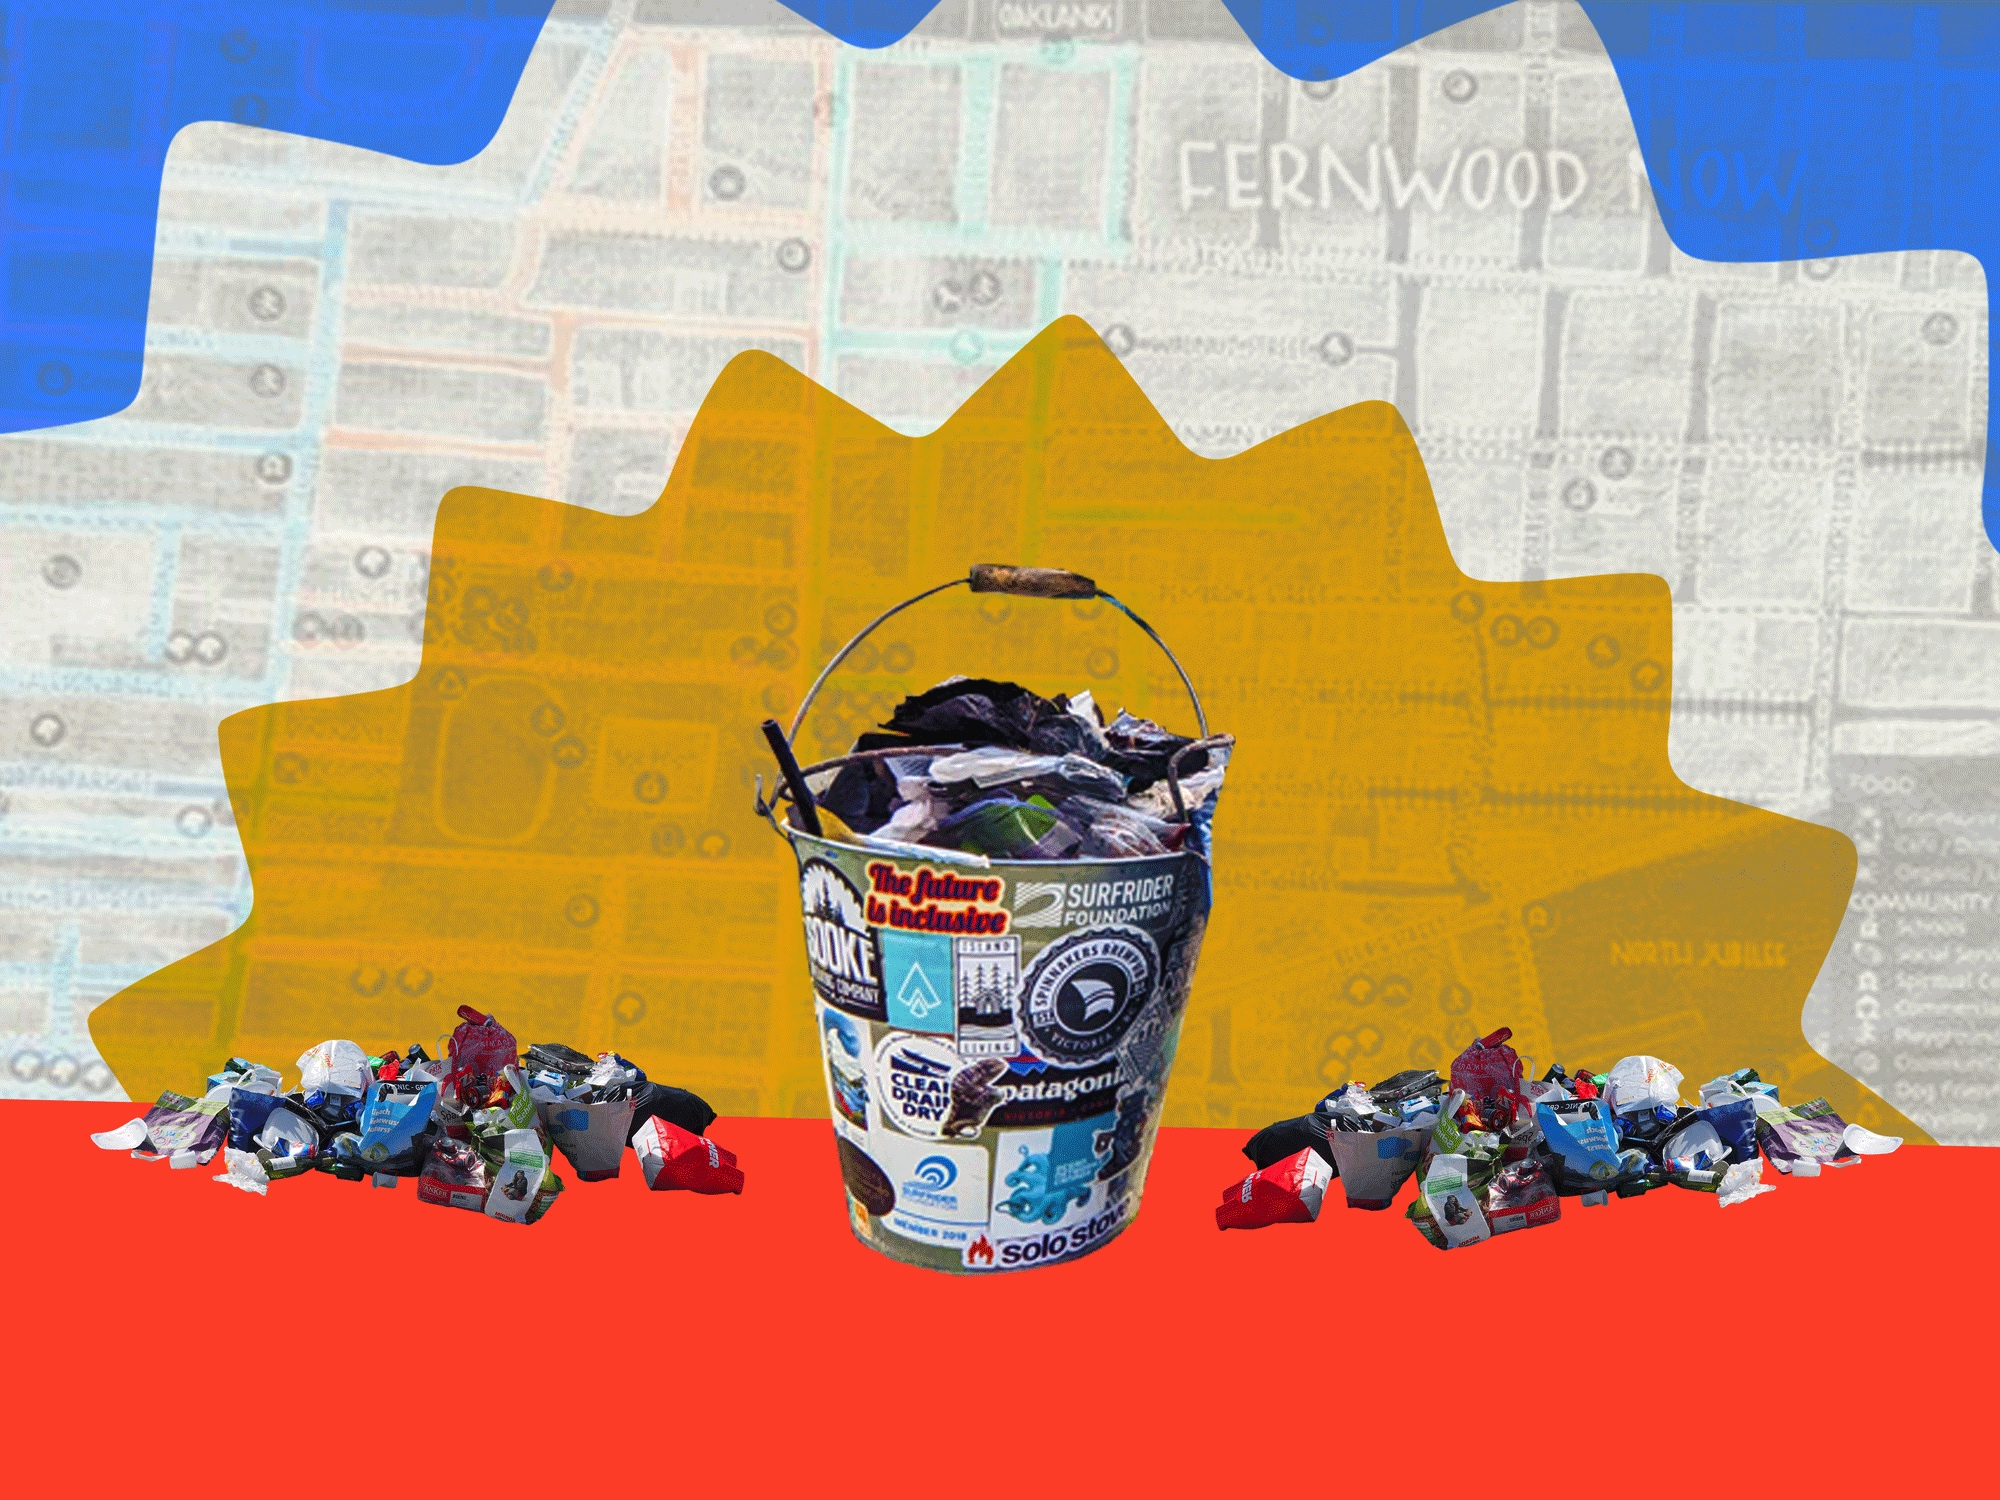 One bucket at a time, locals are taking on Victoria's litter